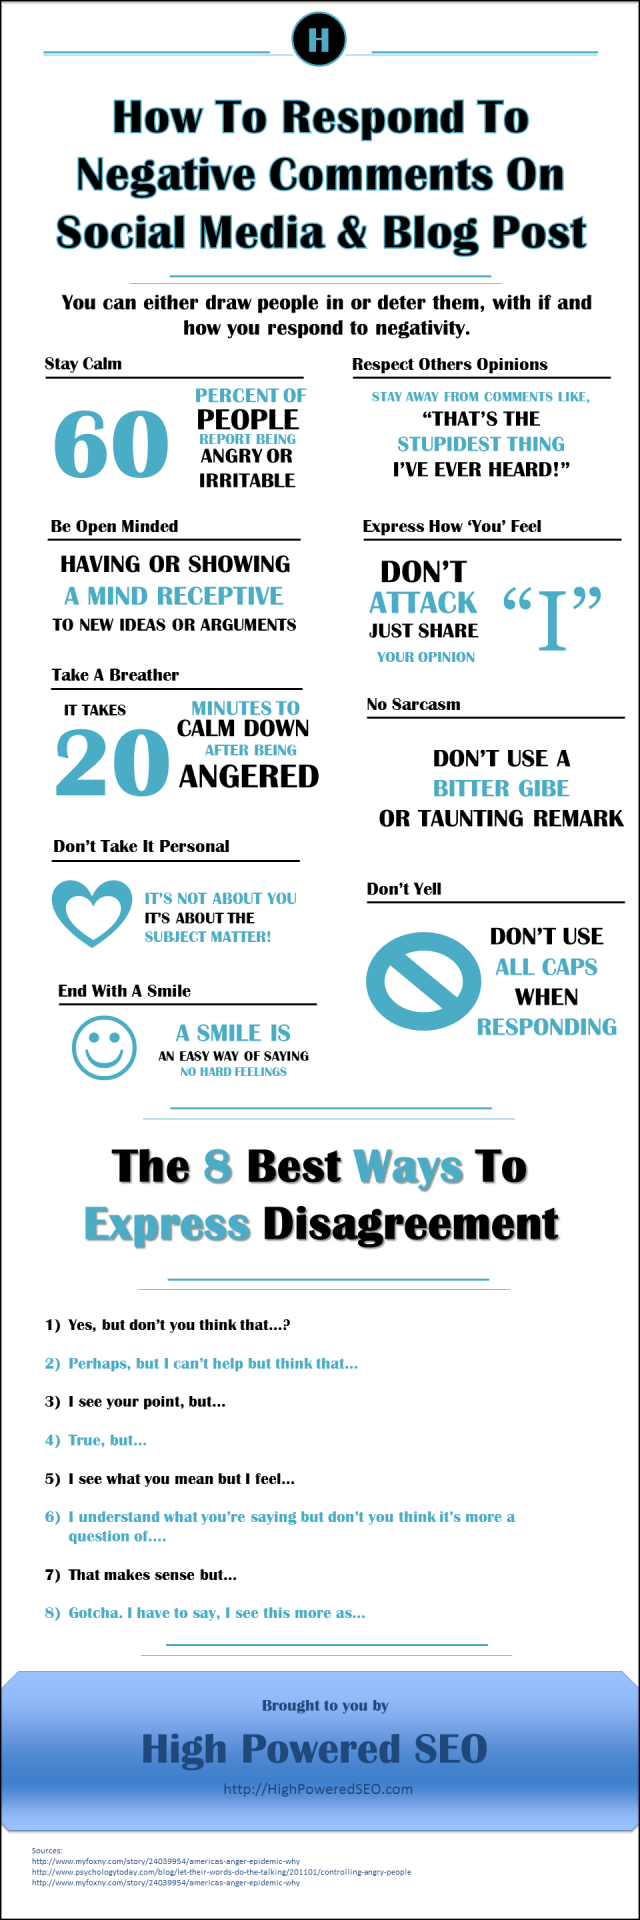 How to Respond to Negative Comments On Social Media and Blog Post